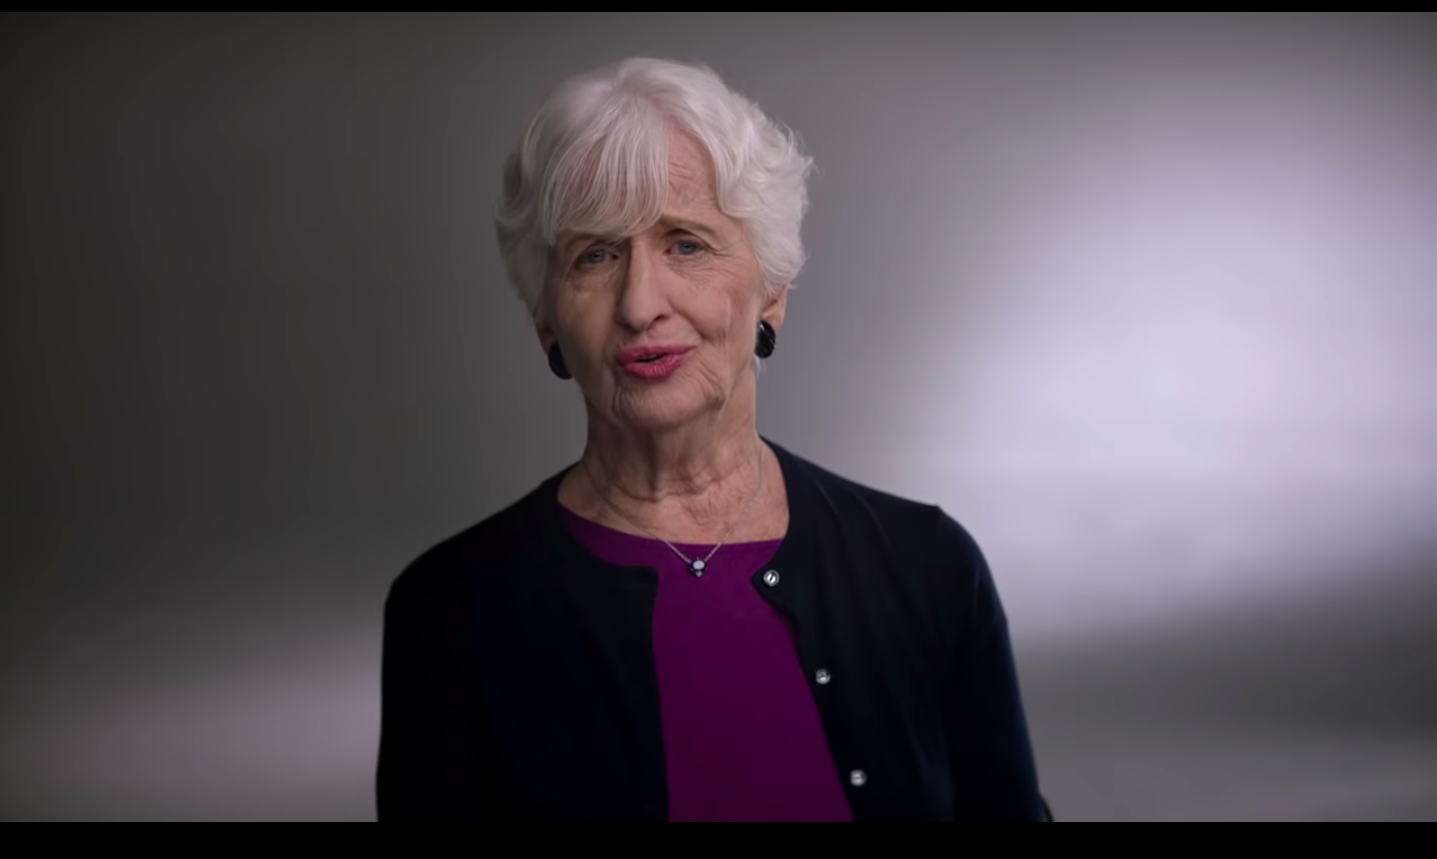 Knock the Vote's new digital campaign features senior citizens telling younger people to not vote.